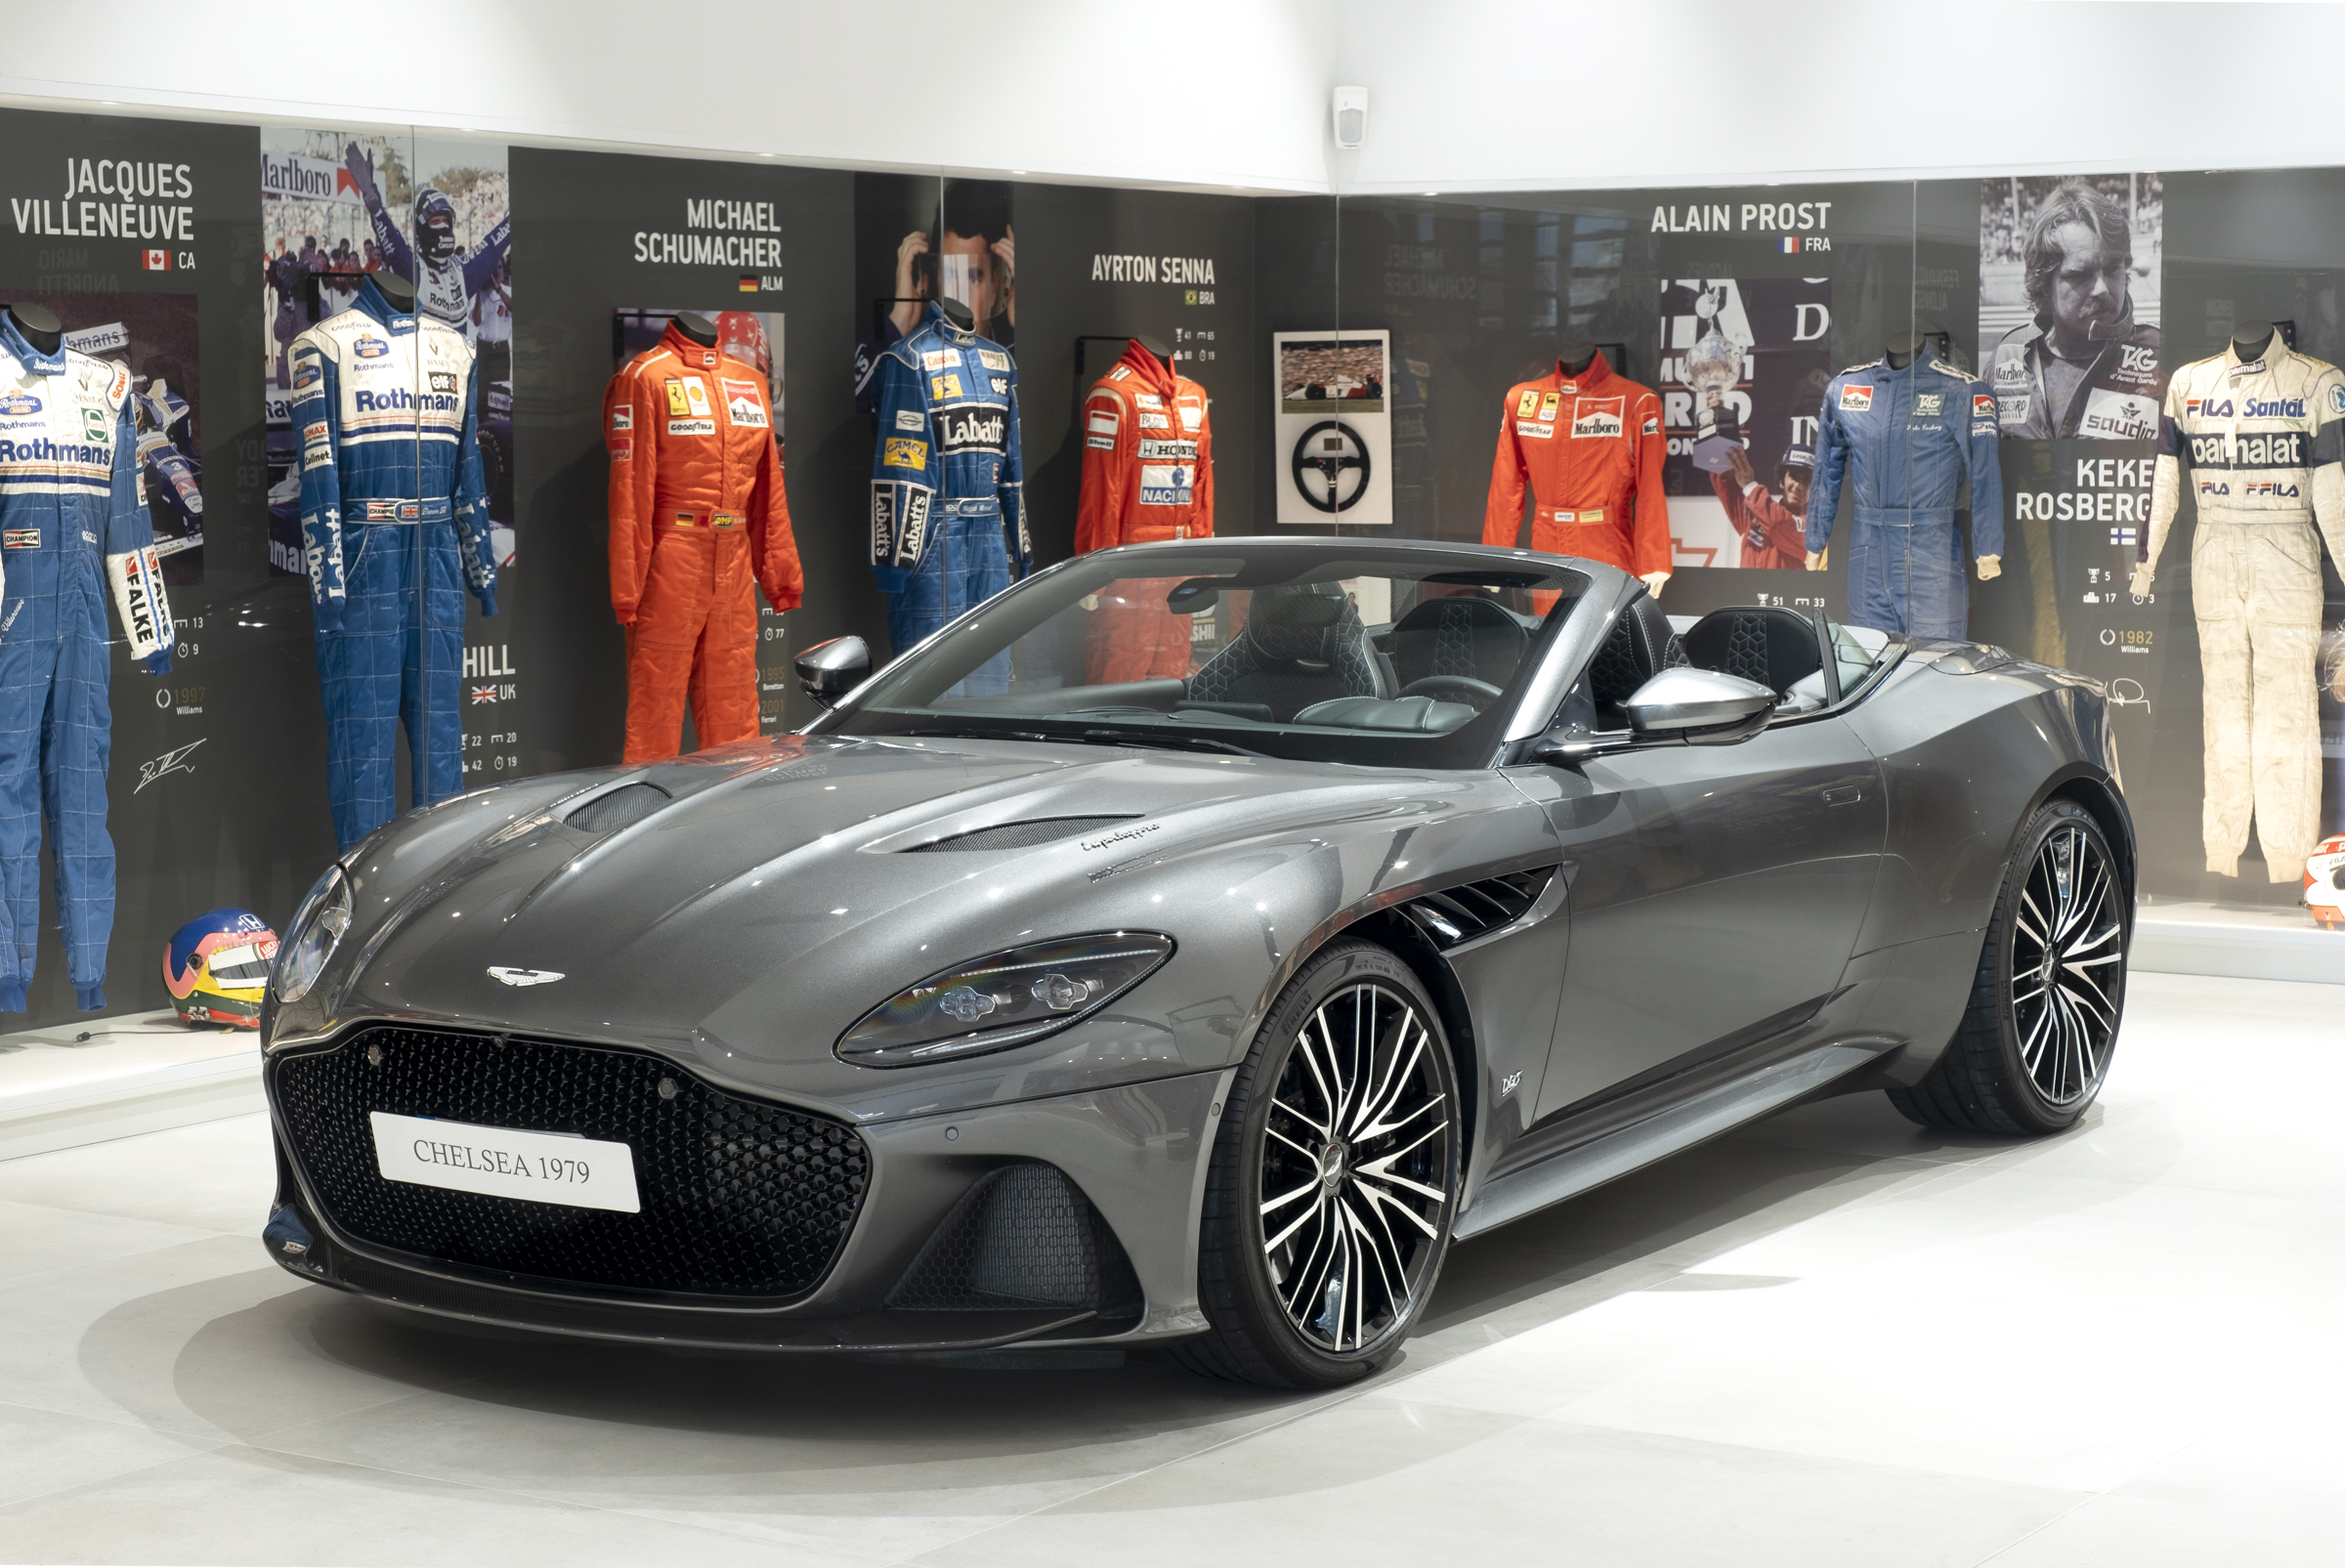 DSCF984301 1 Aston Martin DBS Supperleggera